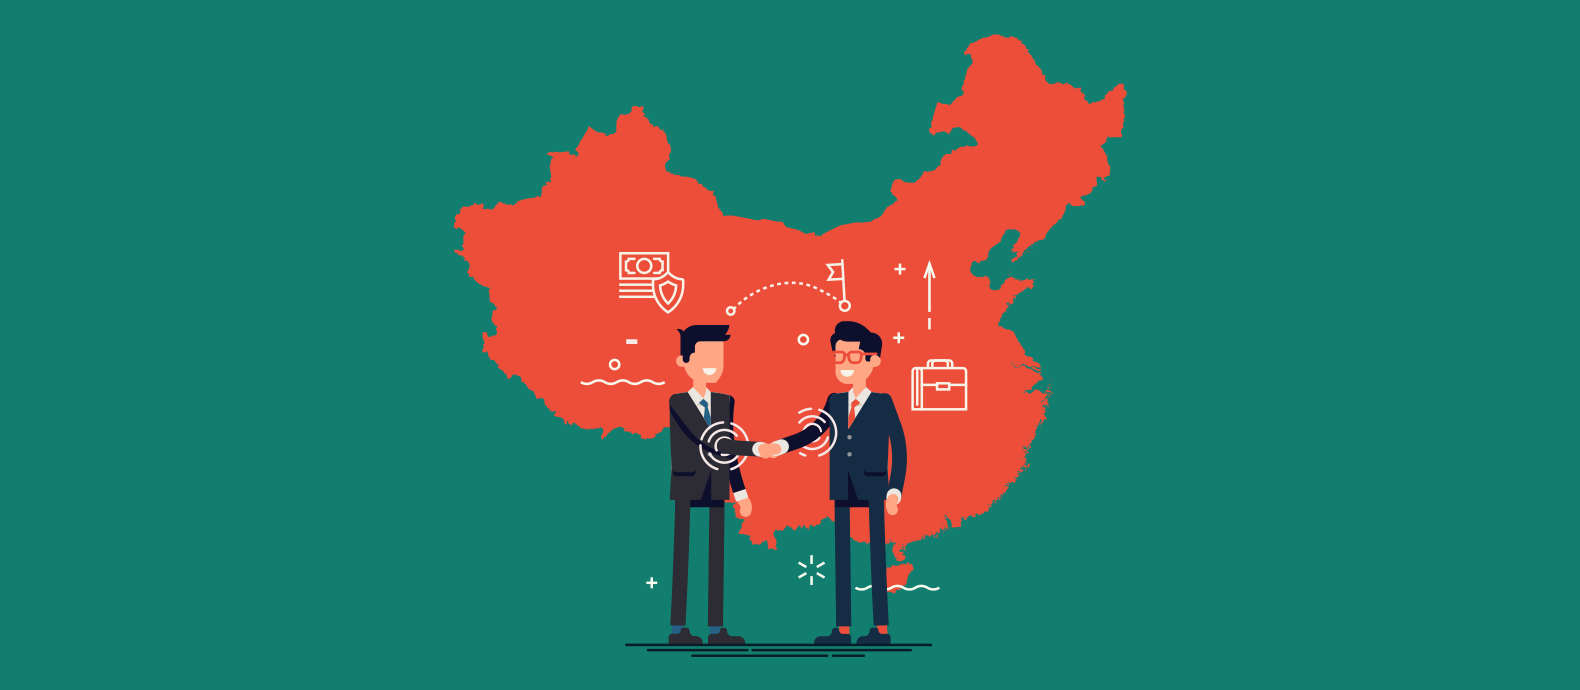 The Red Points guide to intellectual property in China